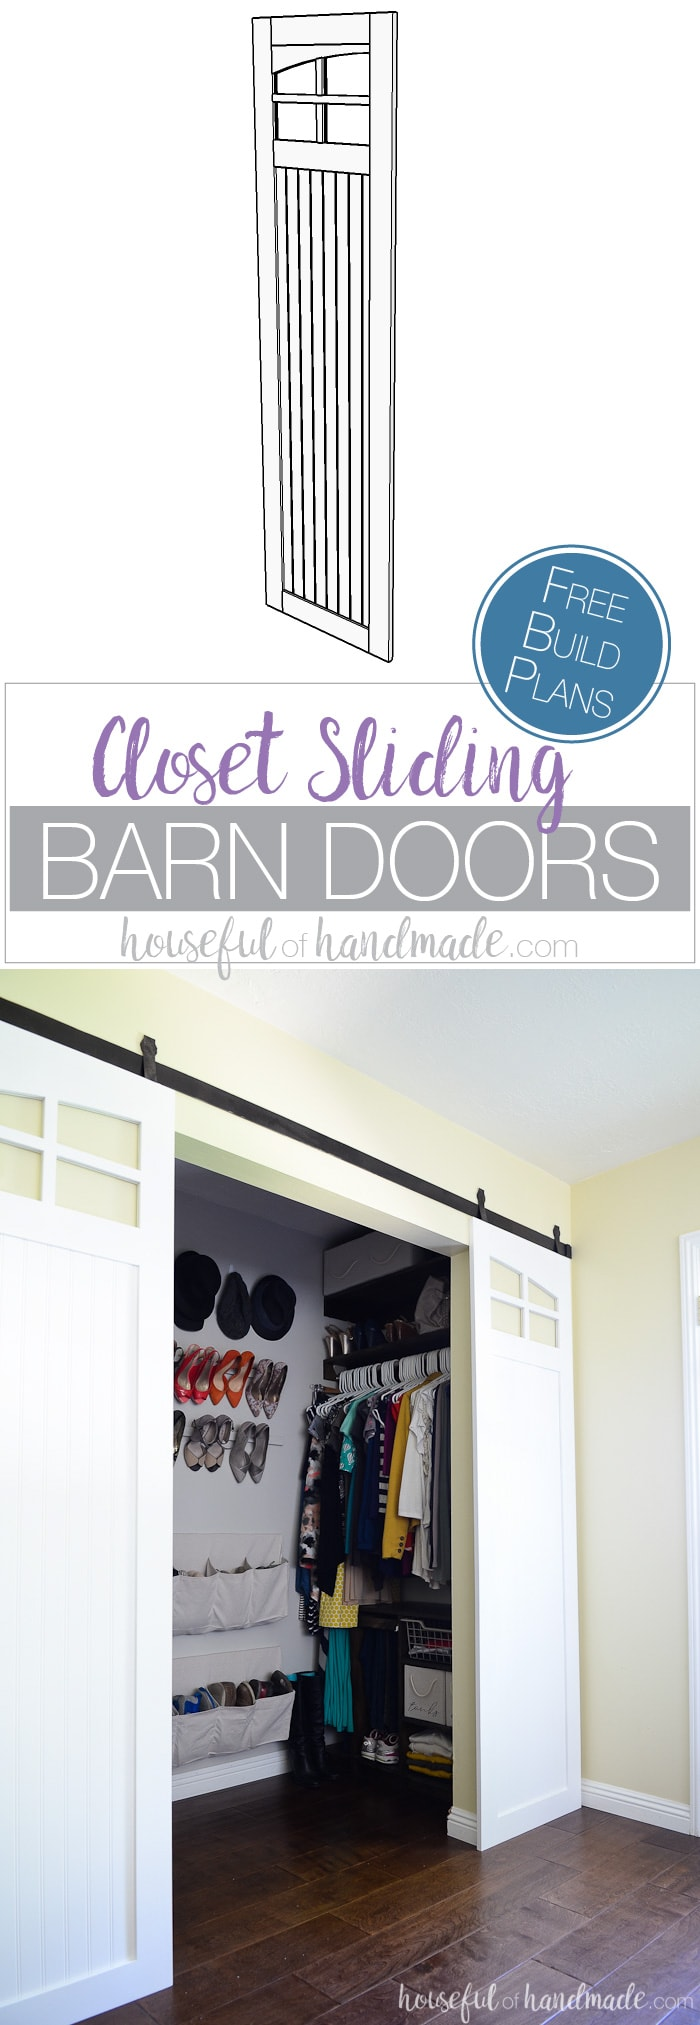 Update Your Old Bifold Or Mirrored Closet Doors With These Sliding Barn  Doors. The Curved